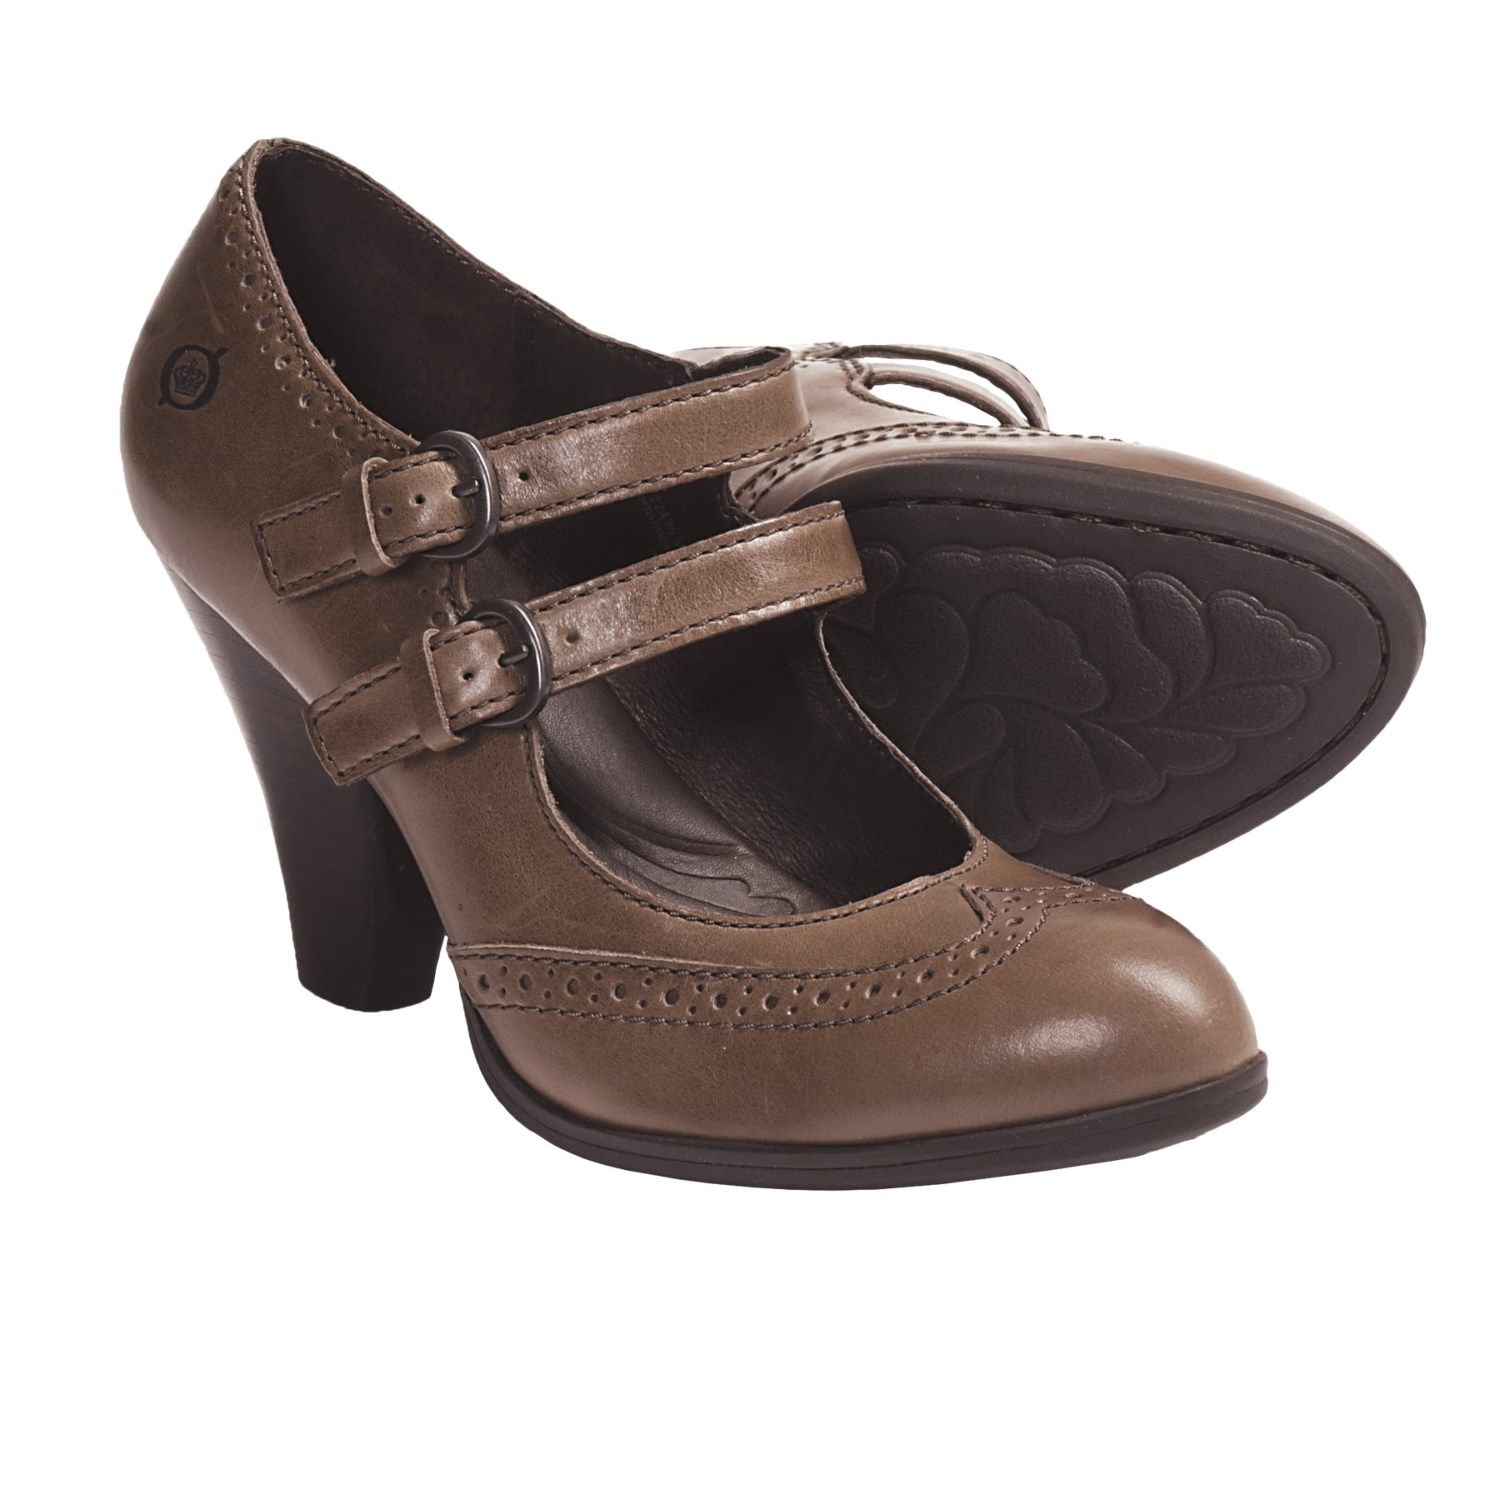 The Mary Jane combines Dansko's signature comfort with one of one of our favorite, popular and fashionable styles. From wedges and heels to Mary Jane style clogs, our selection of Mary Jane shoes for women come in a variety of colors, leathers, and heel heights.